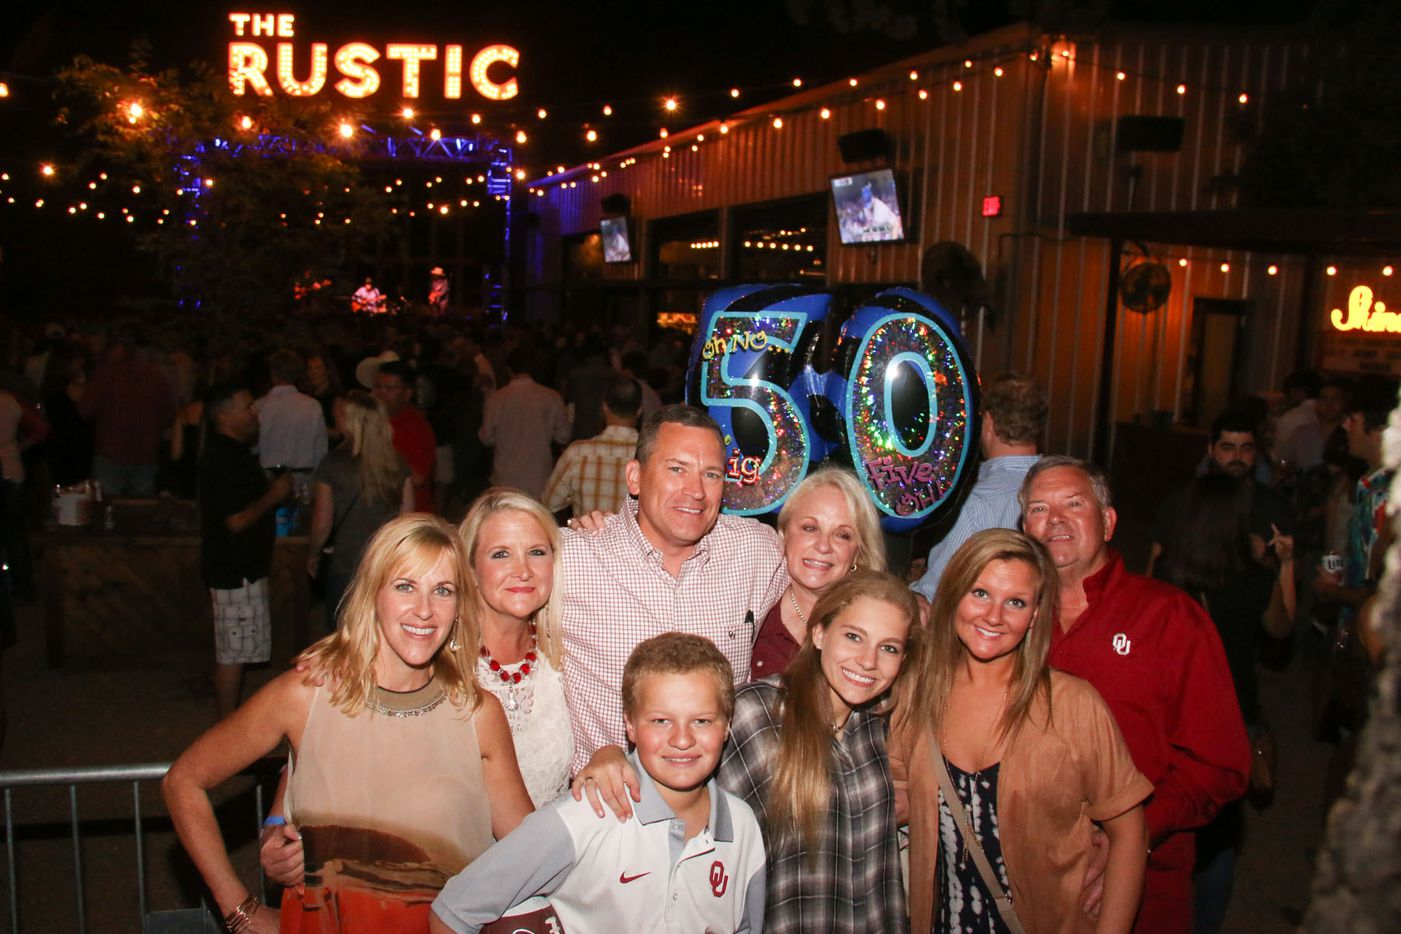 Lance Bailey (center) celebrated his 50th birthday with his family and friends at  the show.